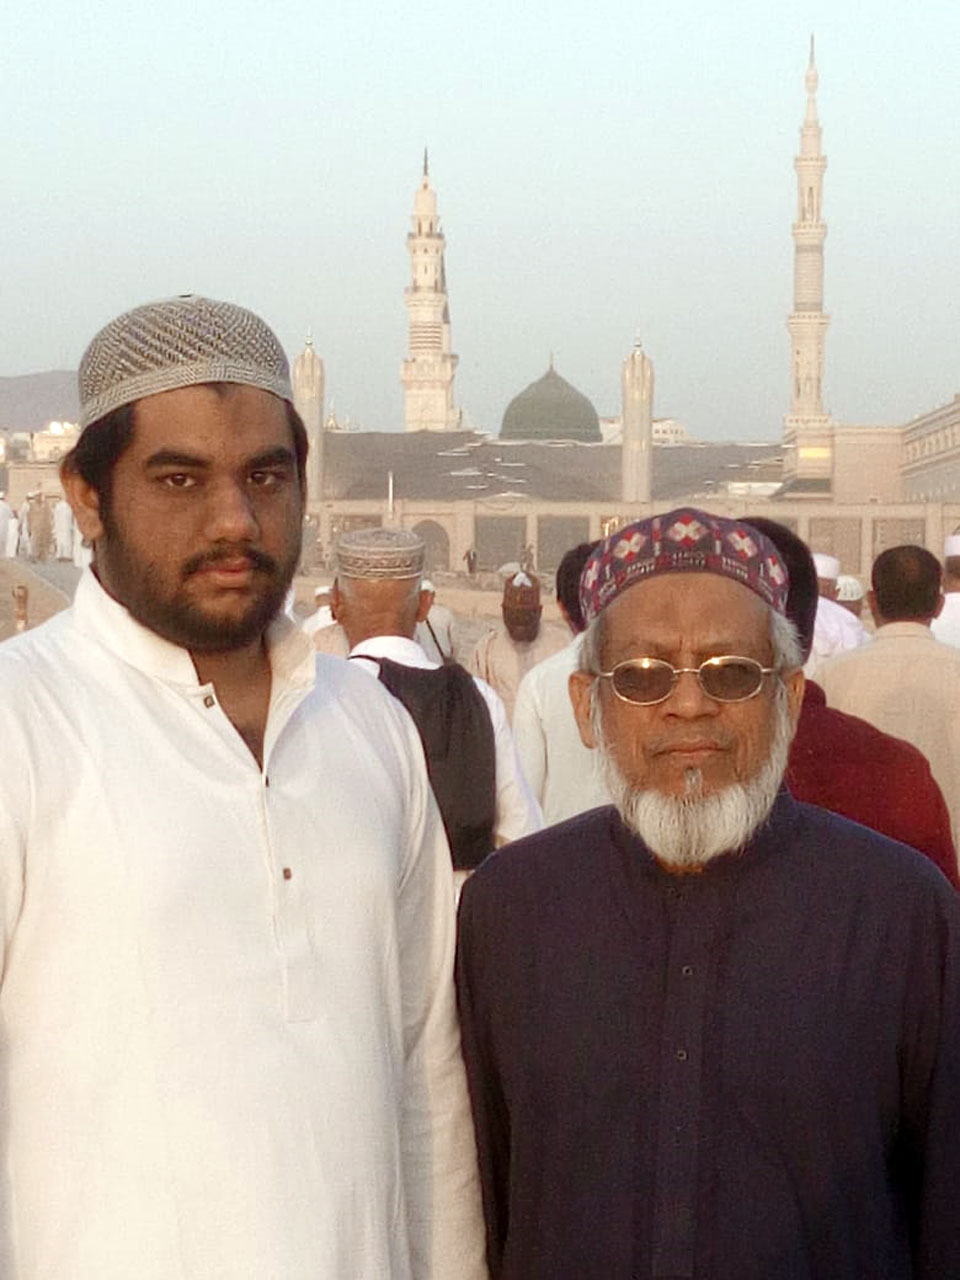 Engr. Taha A. Khan and Engr. Iqbal A. Khan inside Jannat Ul Baqi in Madina